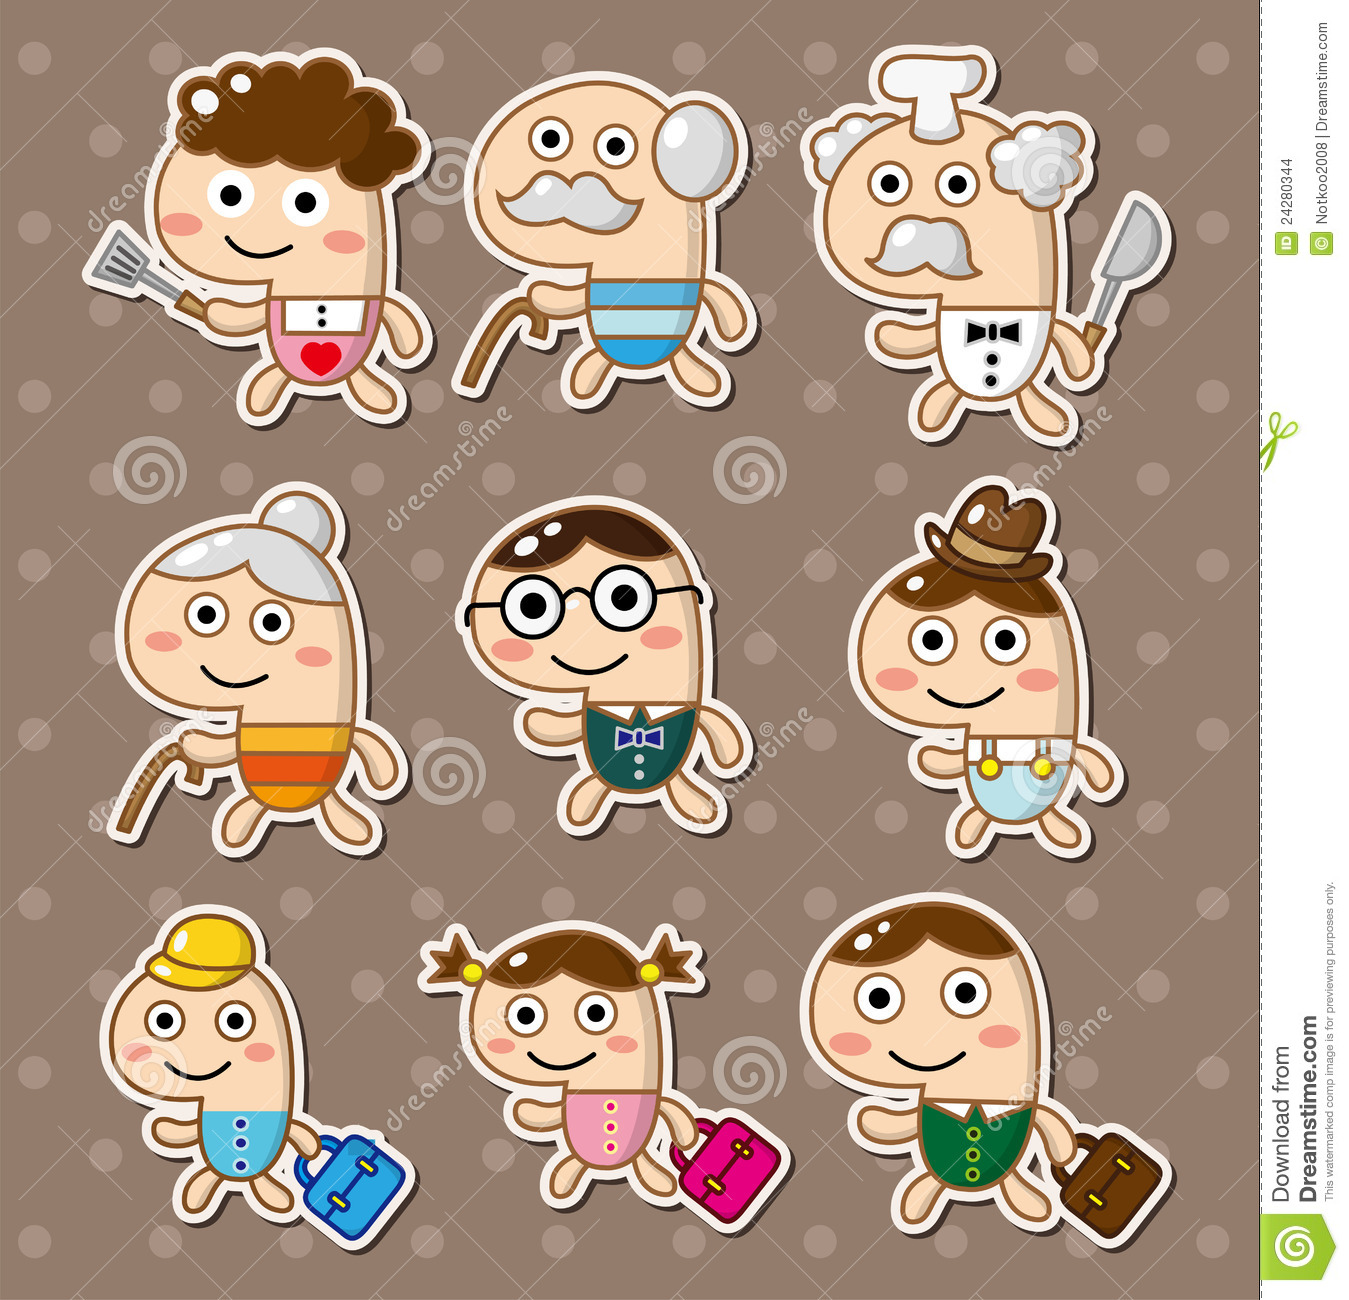 computer icon stickers stock vector illustration of cute 24538247